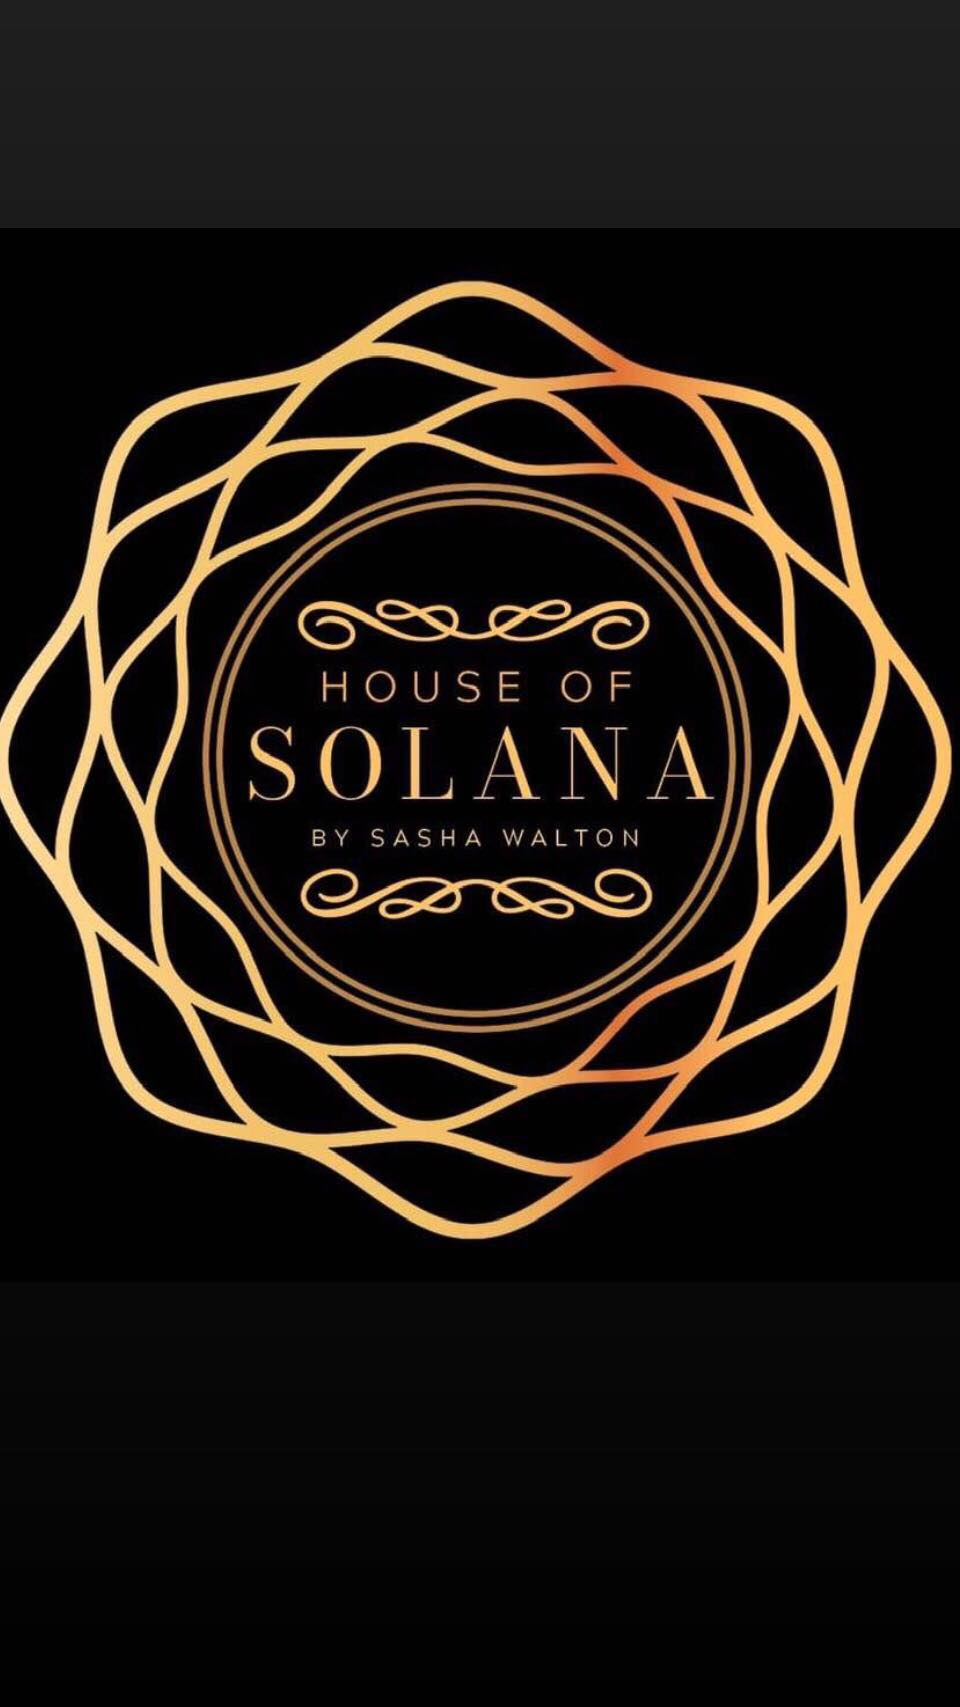 fabUffiliate Business: House of Solana Hosts Online Fashion Show